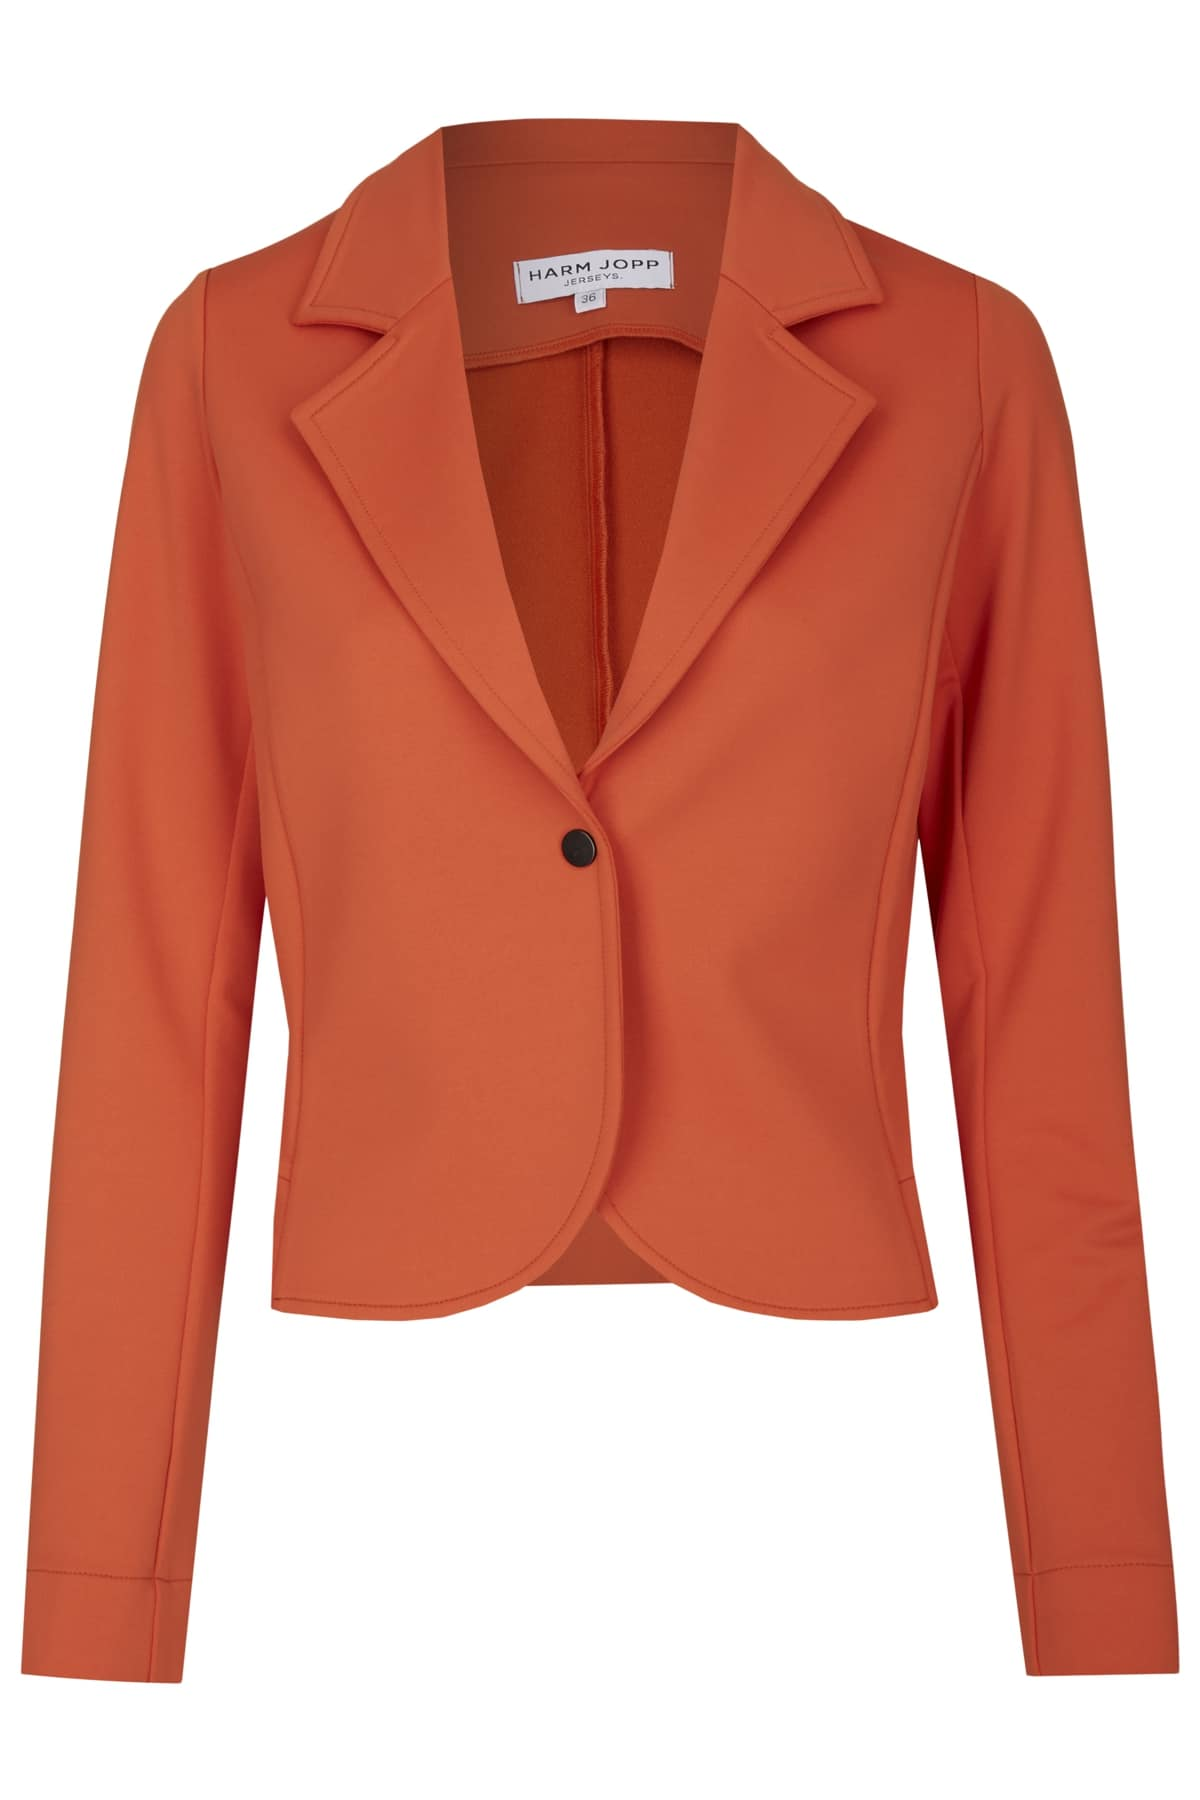 blazer_lida_miti_orange_1